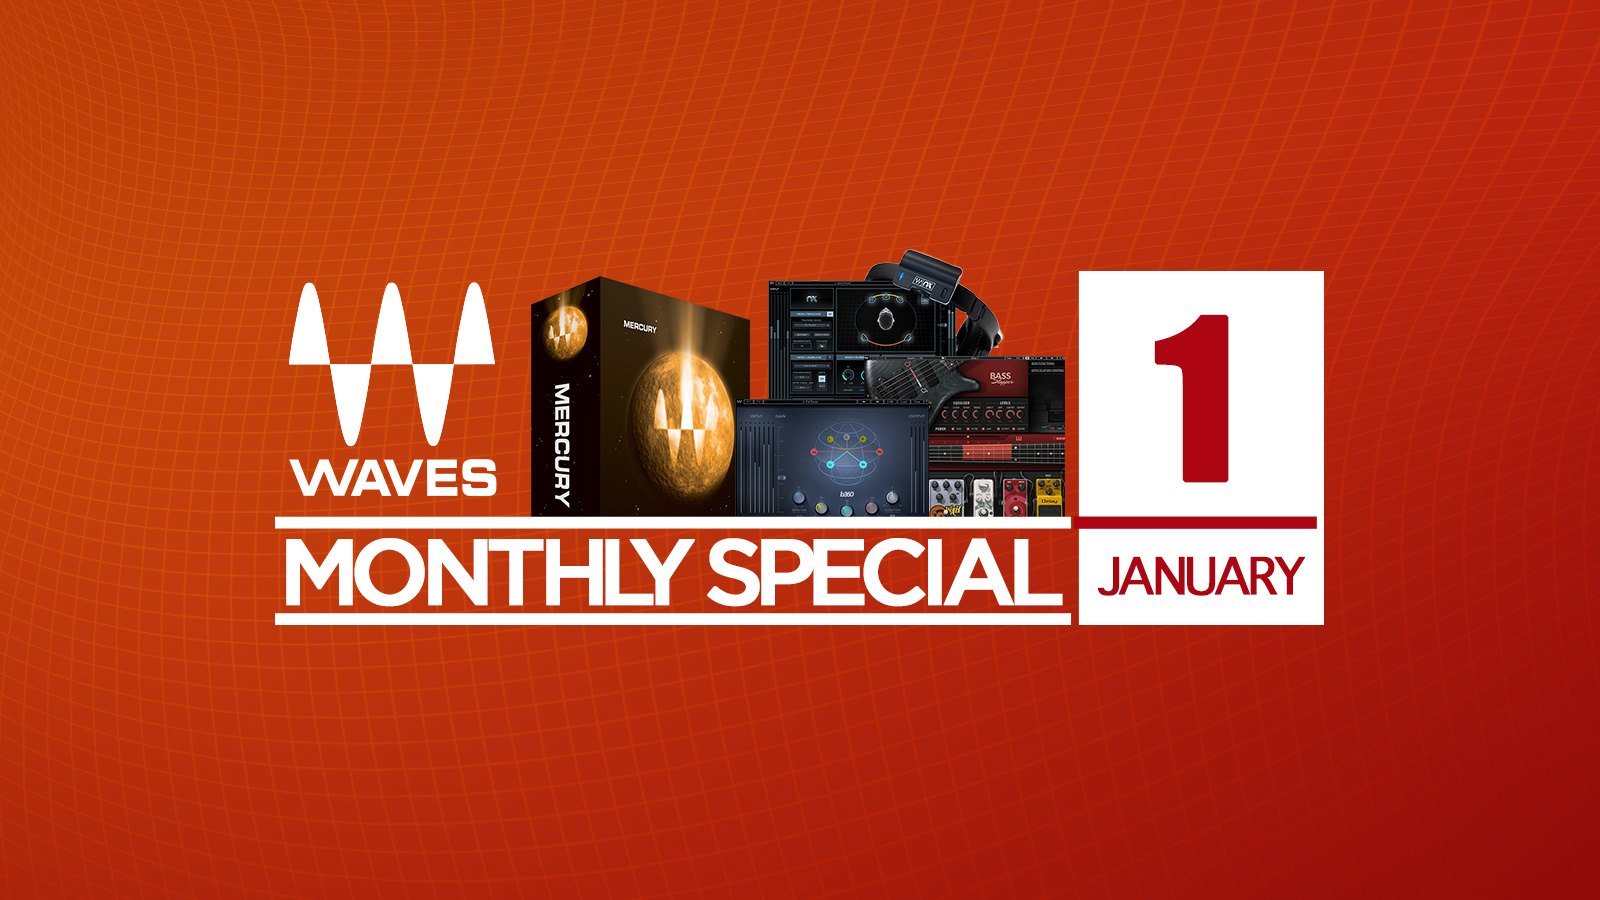 Diamondが日本限定91%オフ!Waves January Special 2018